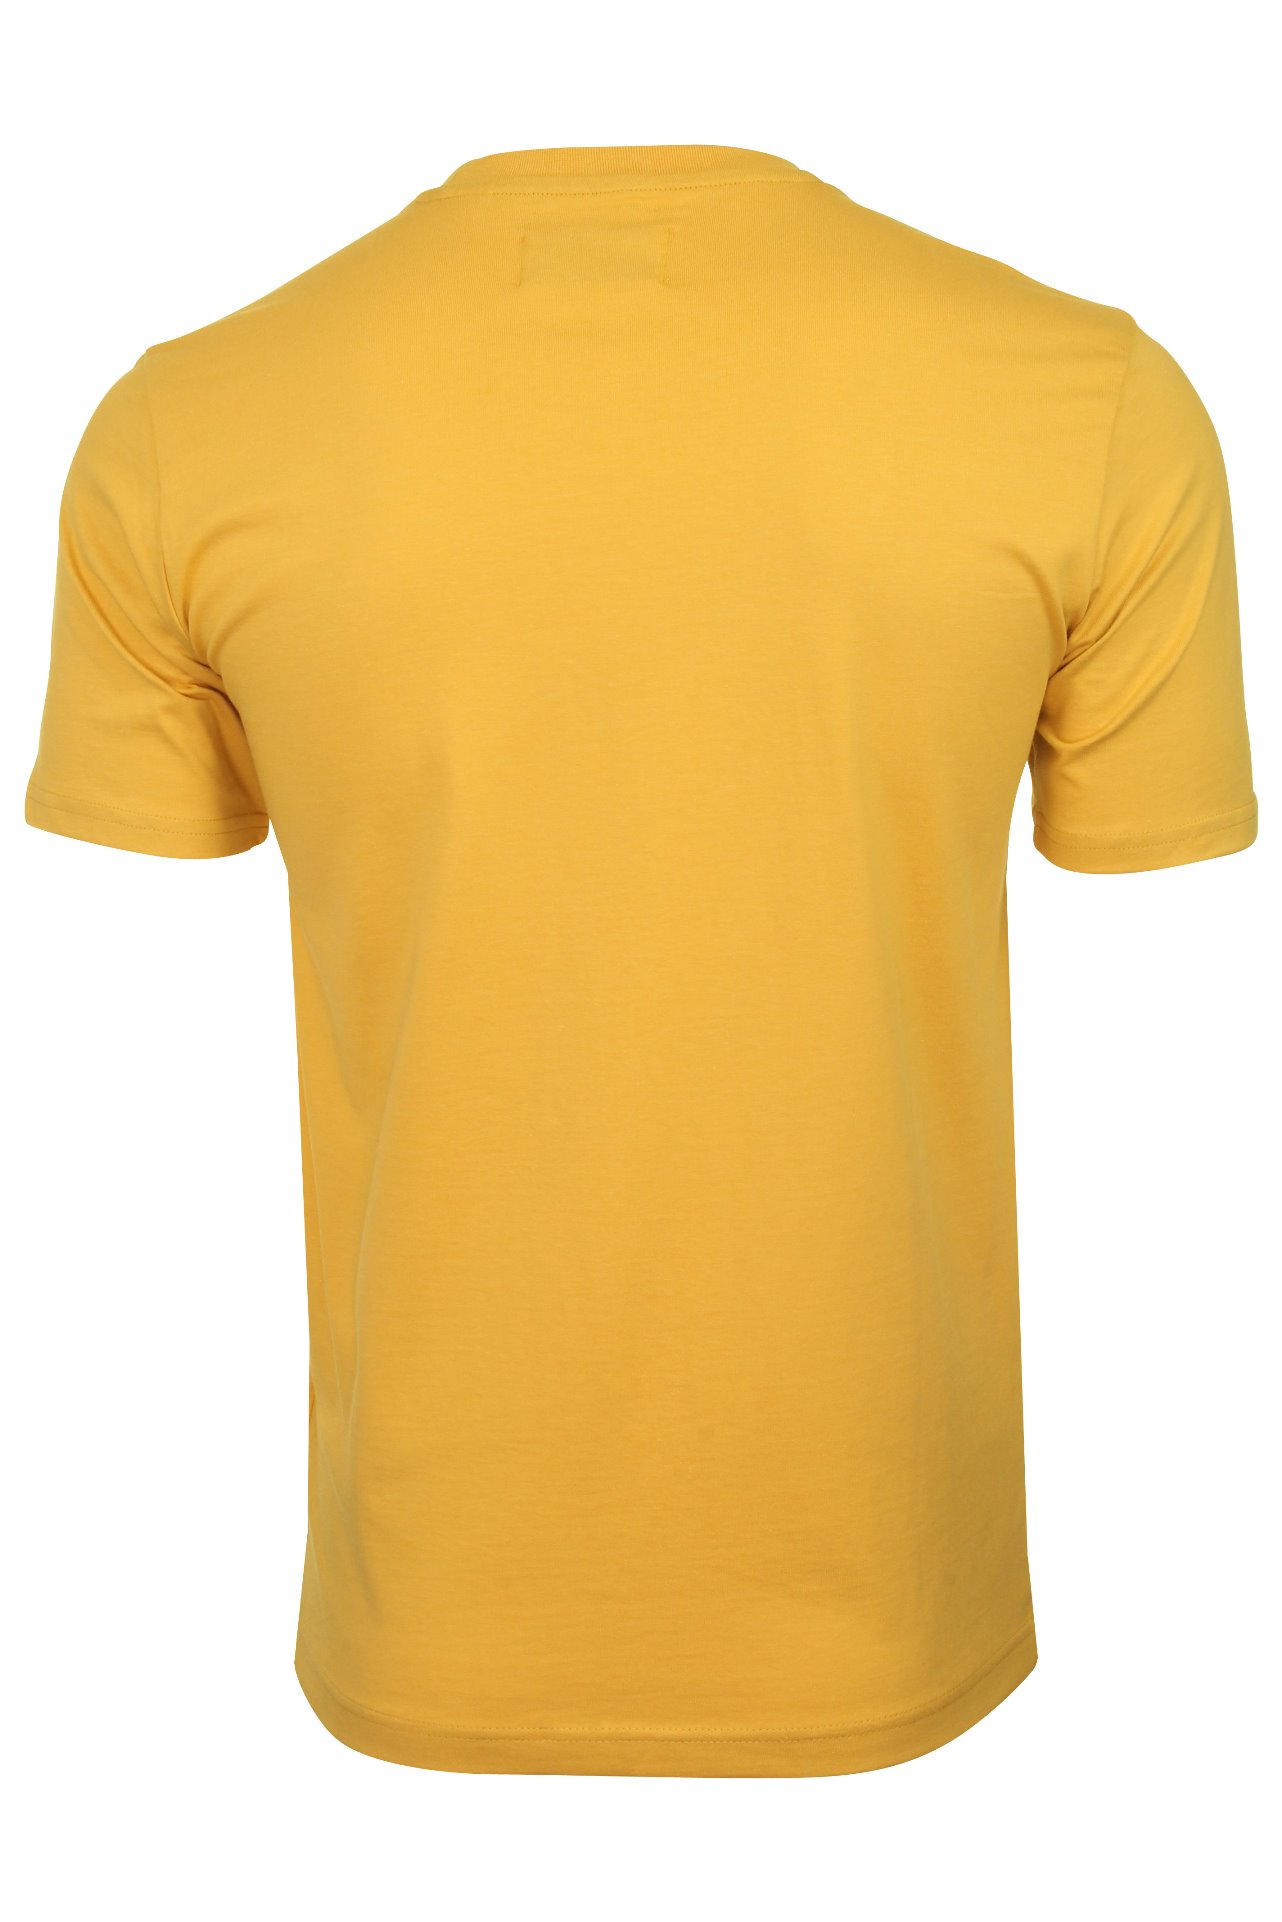 Original-Penguin-Mens-T-Shirt-039-Pin-Point-Embroidered-039-Short-Sleeved thumbnail 14